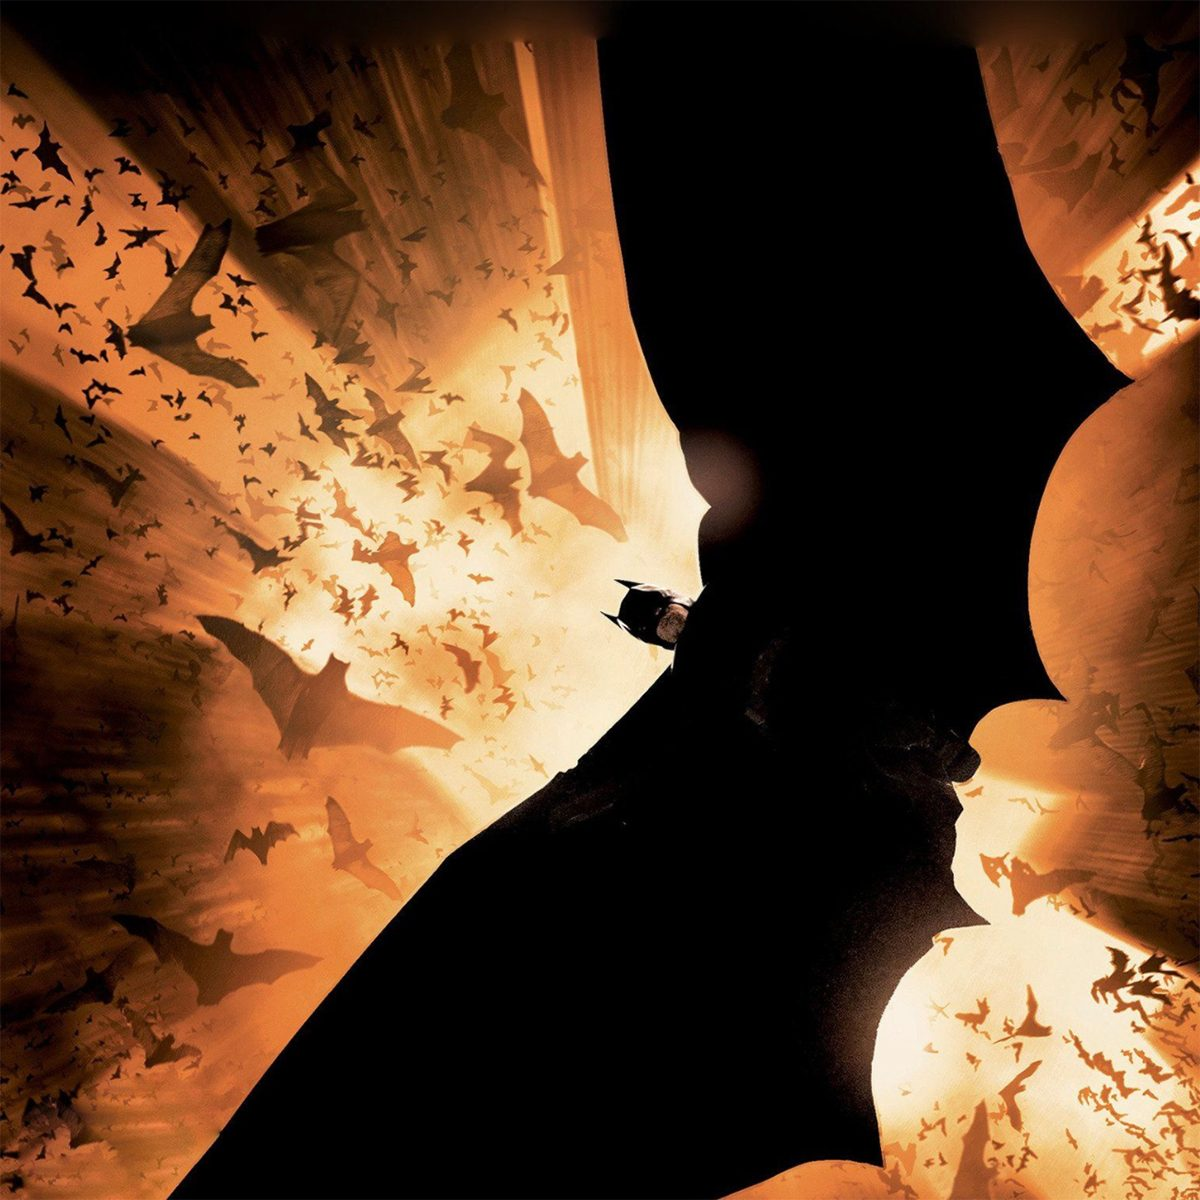 Best action movies on Netflix Canada - Batman Begins